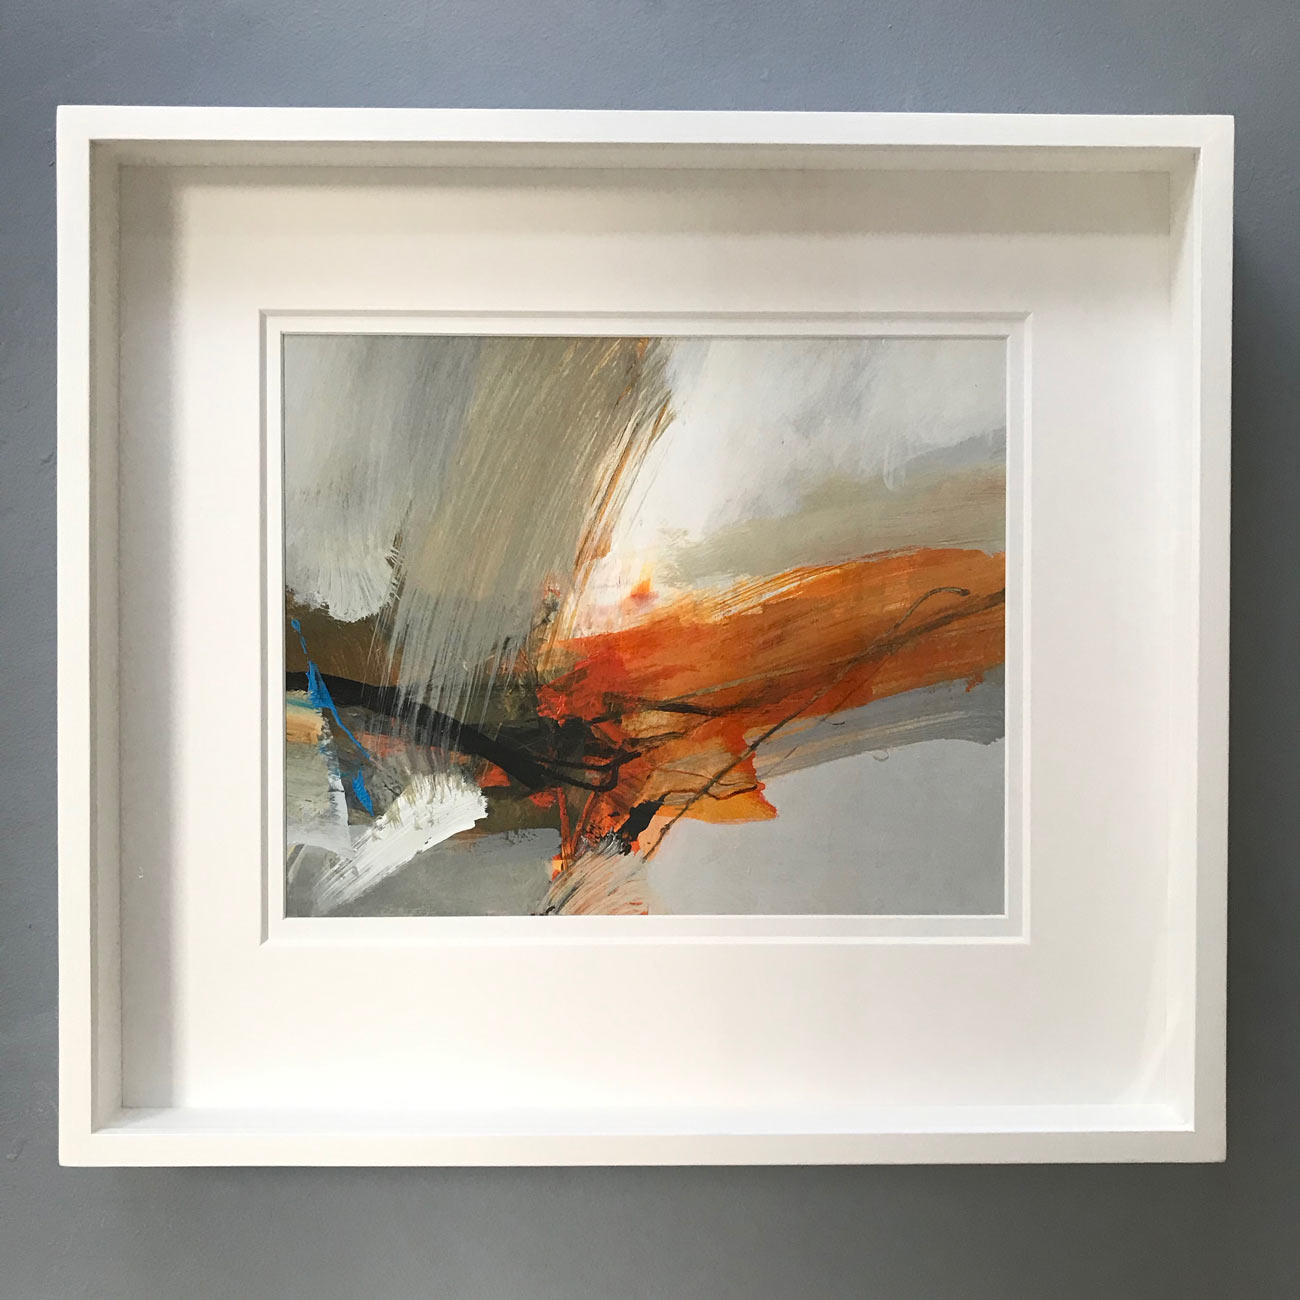 Voyager framed by Neil Canning. Studio Collection Winter 2020